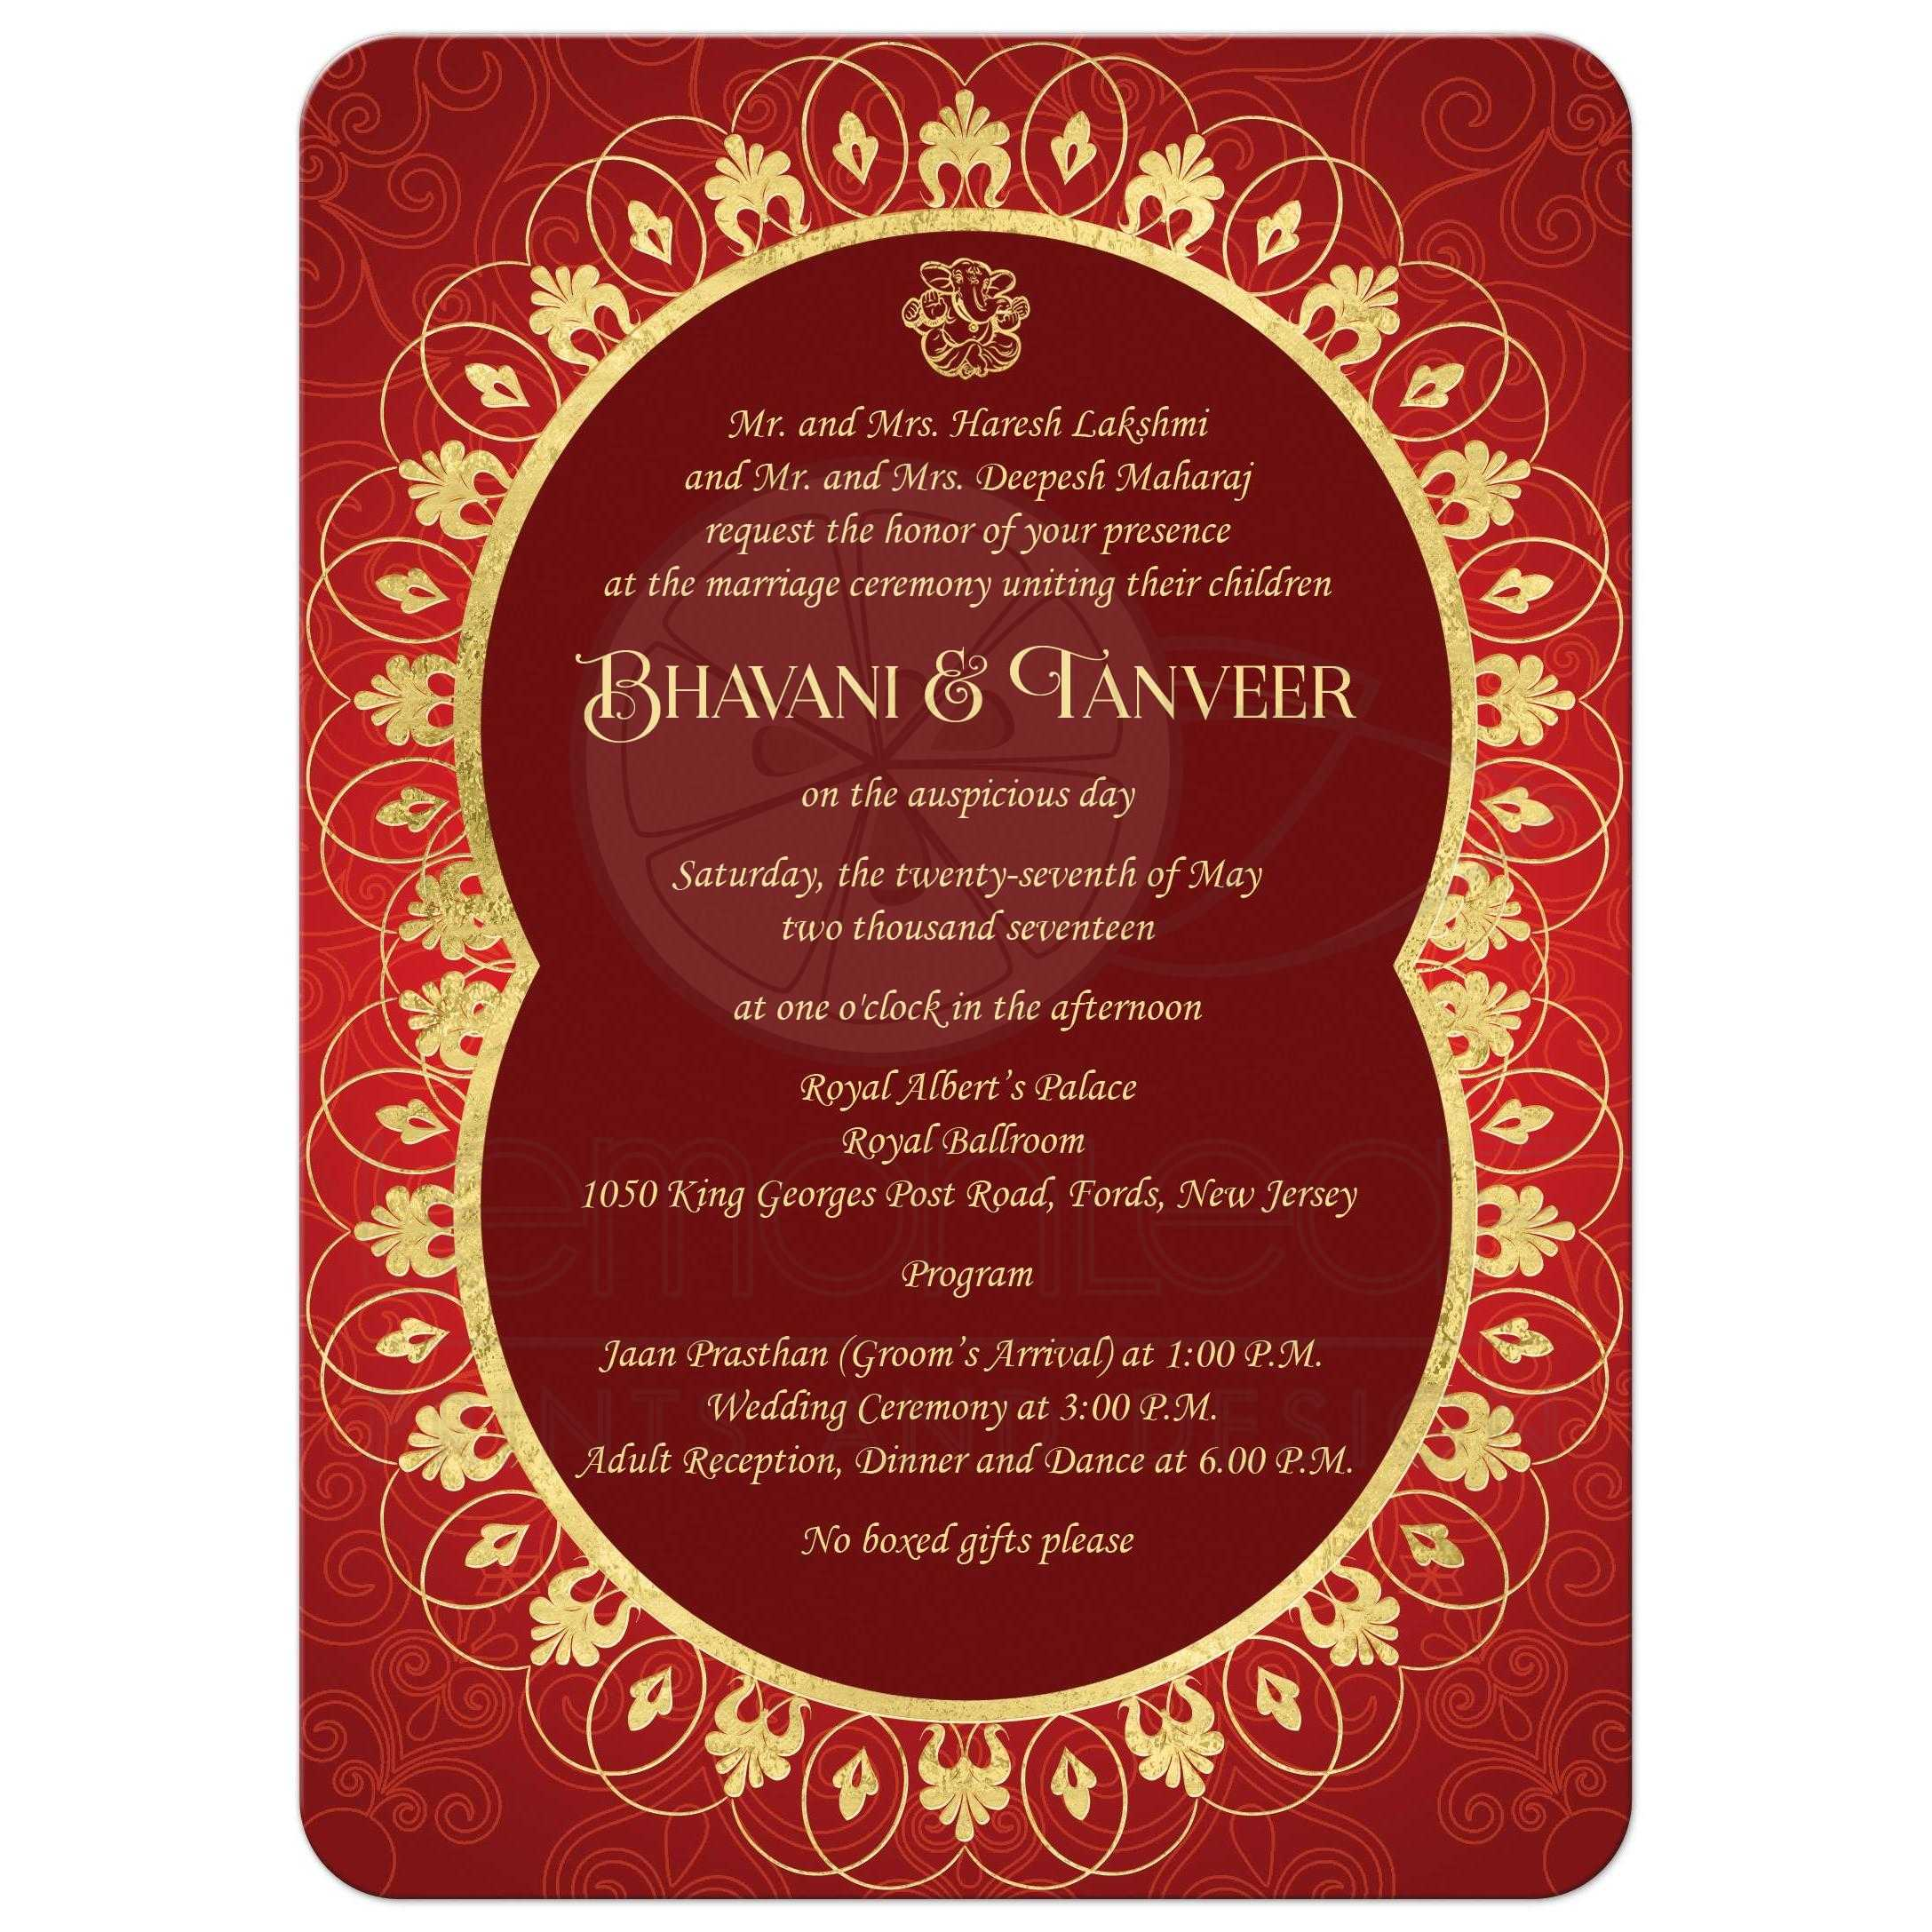 ... Ornate Scrolls Red, Gold, And Orange Indian Wedding Ceremony Invitation  With Circle Medallion, Ornate Scrolls